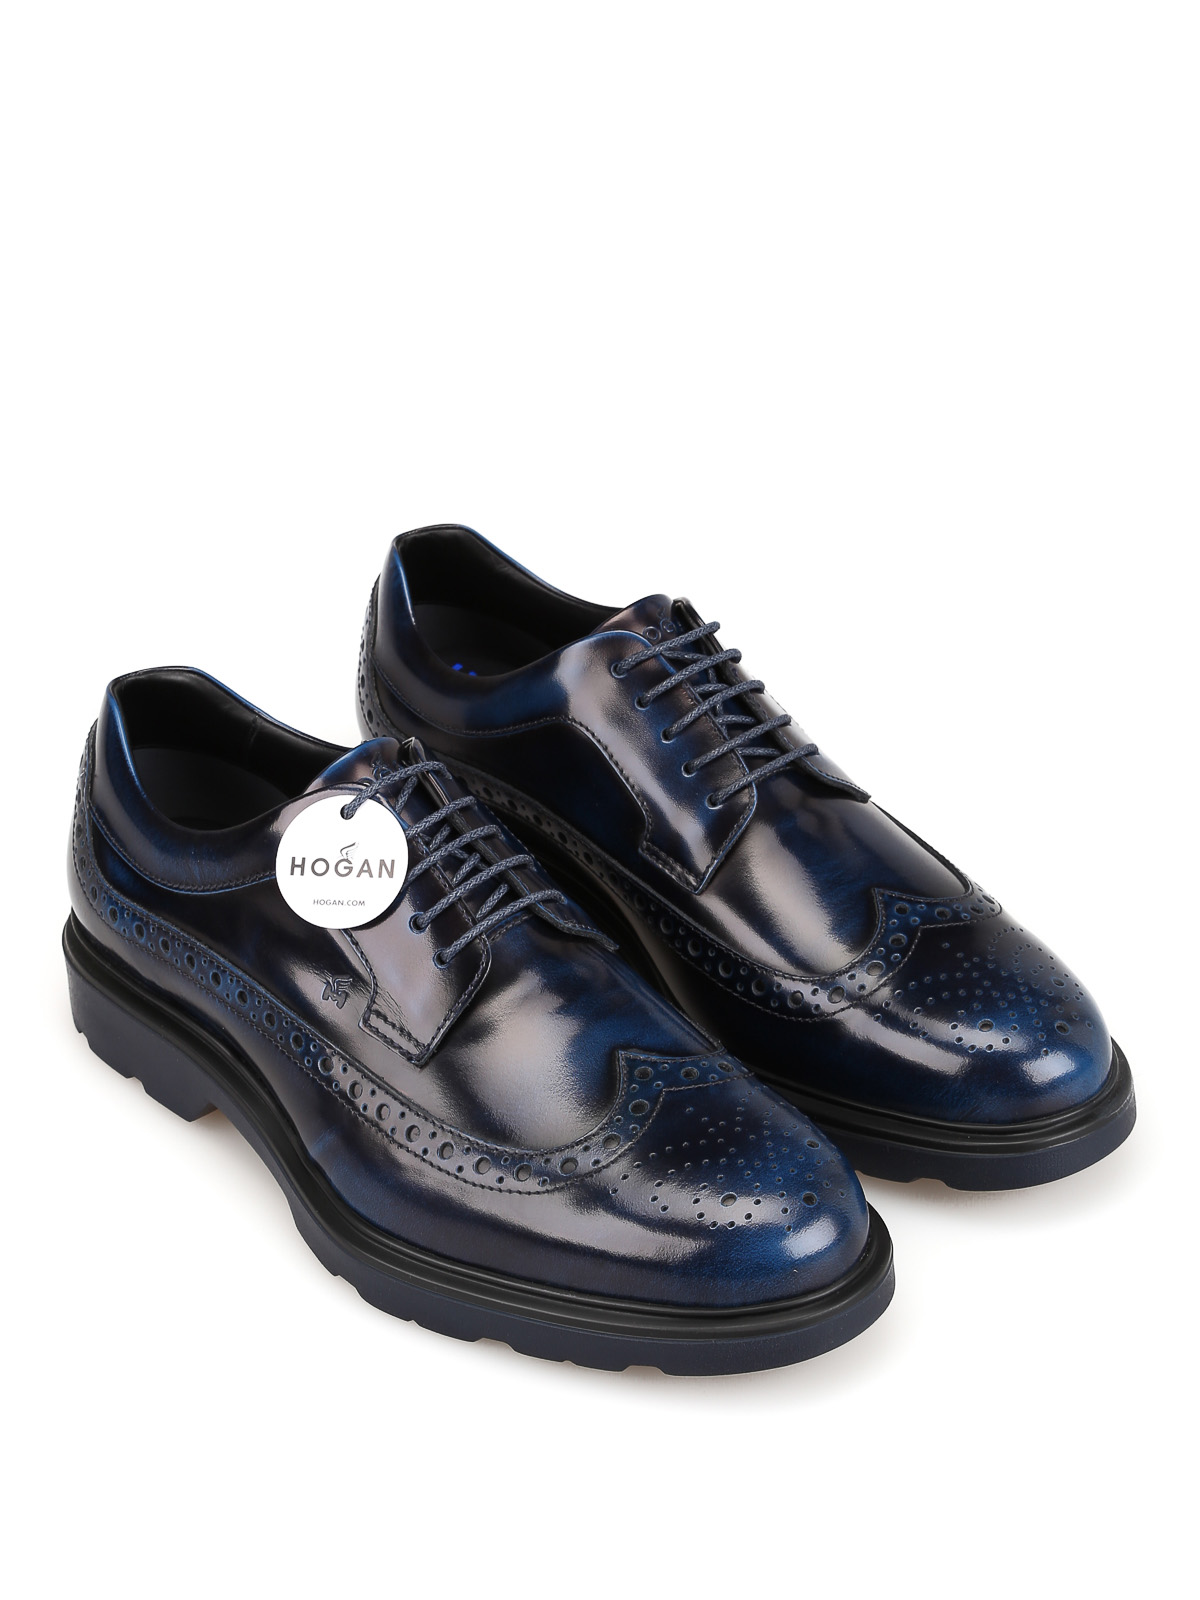 Hogan - Route H393 shaded blue Derby shoes - lace-ups shoes ...